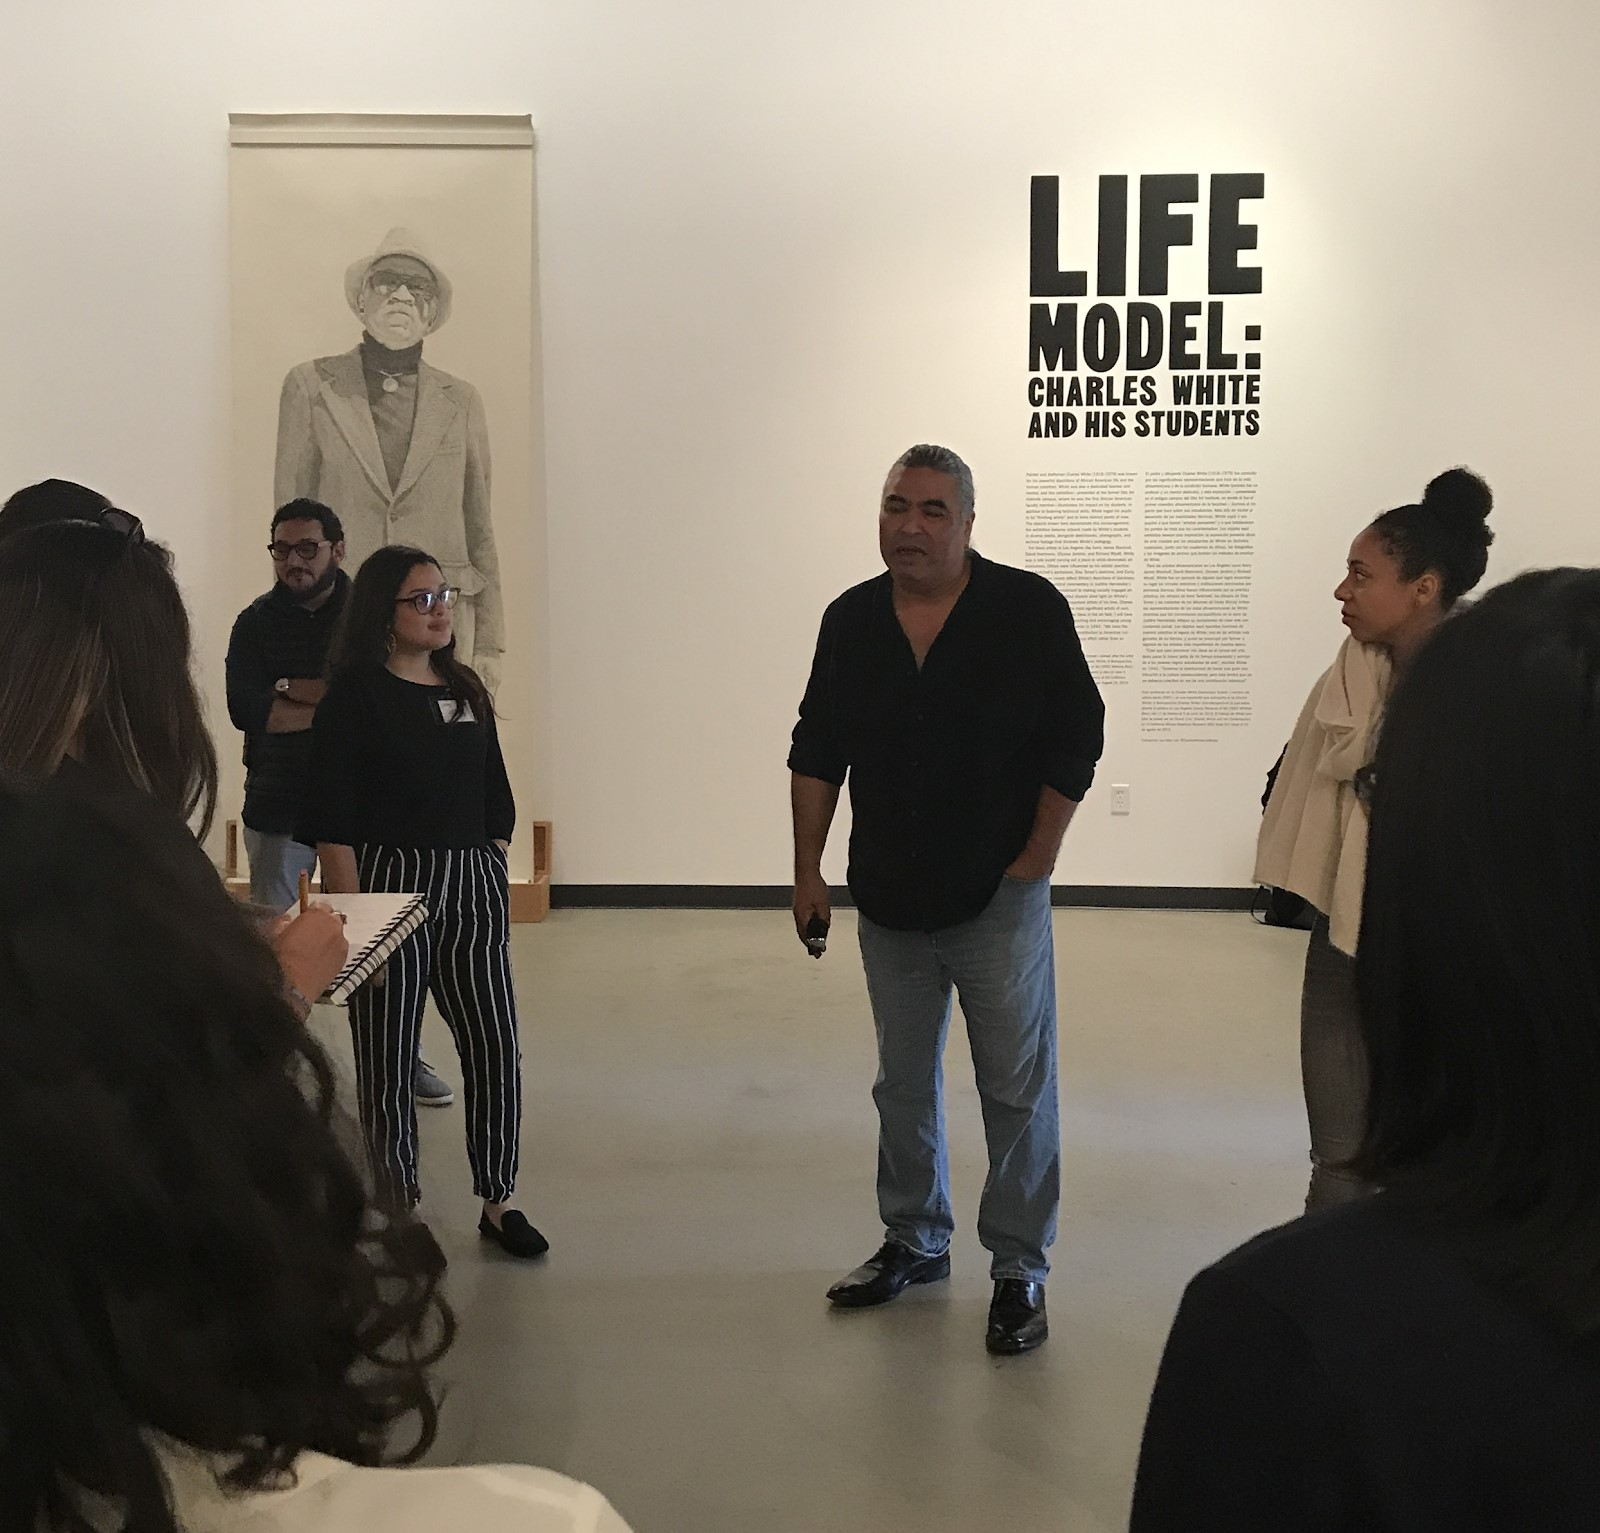 Ian White discussing Life Model: Charles White and His Students with the 2019 Mellon Summer Academy students at the Charles White Elementary School gallery, © Kent Twitchell, photo courtesy Hilary Walter